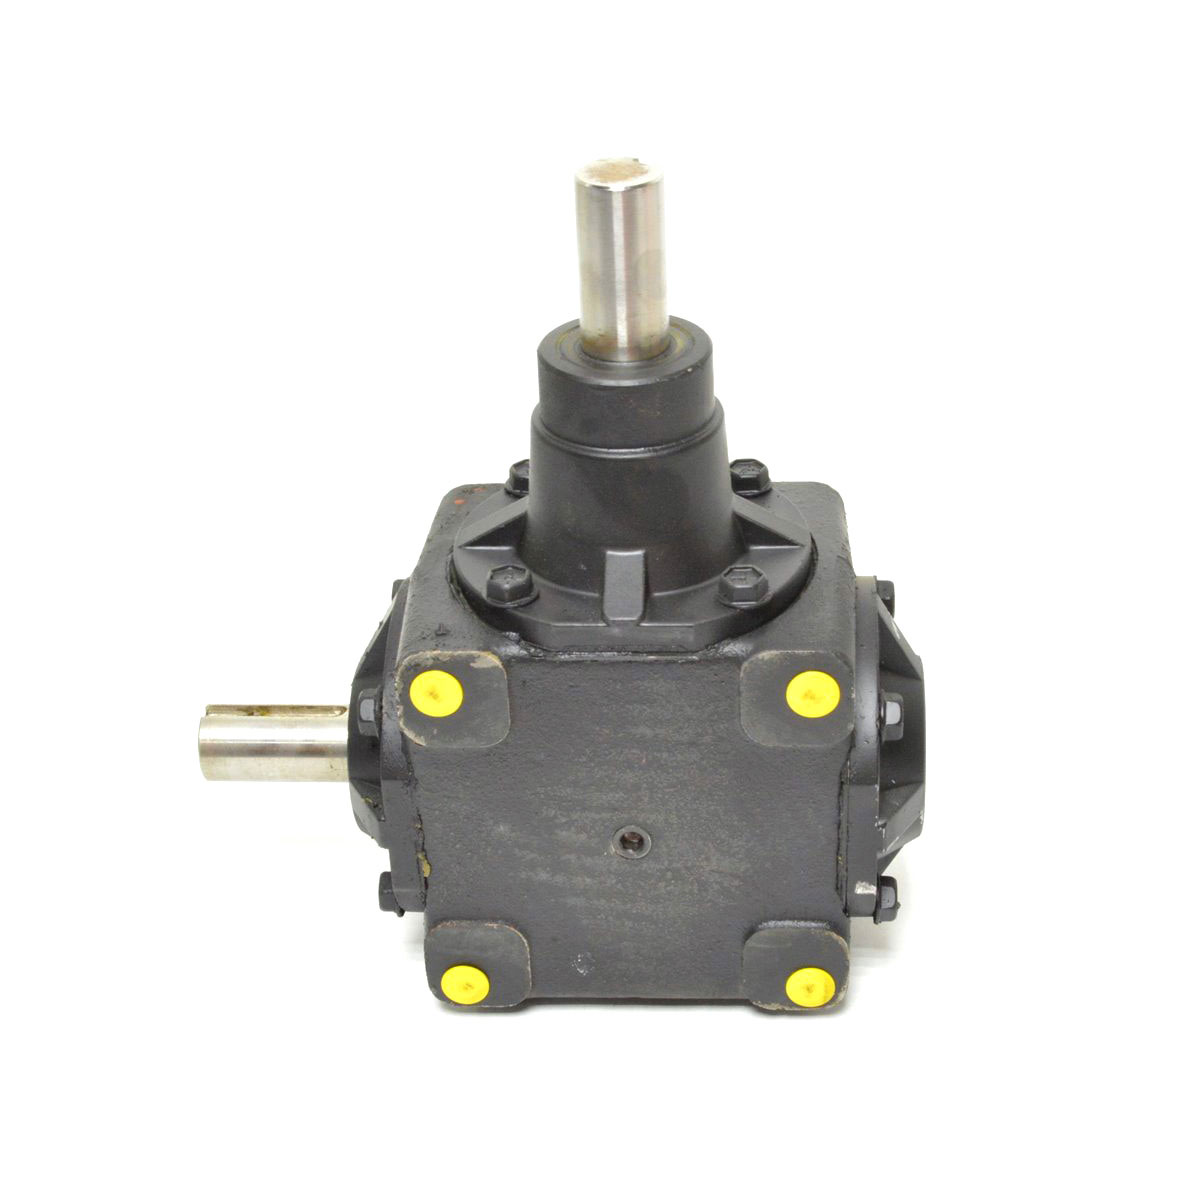 Scag Deck Drive Gearbox 481214